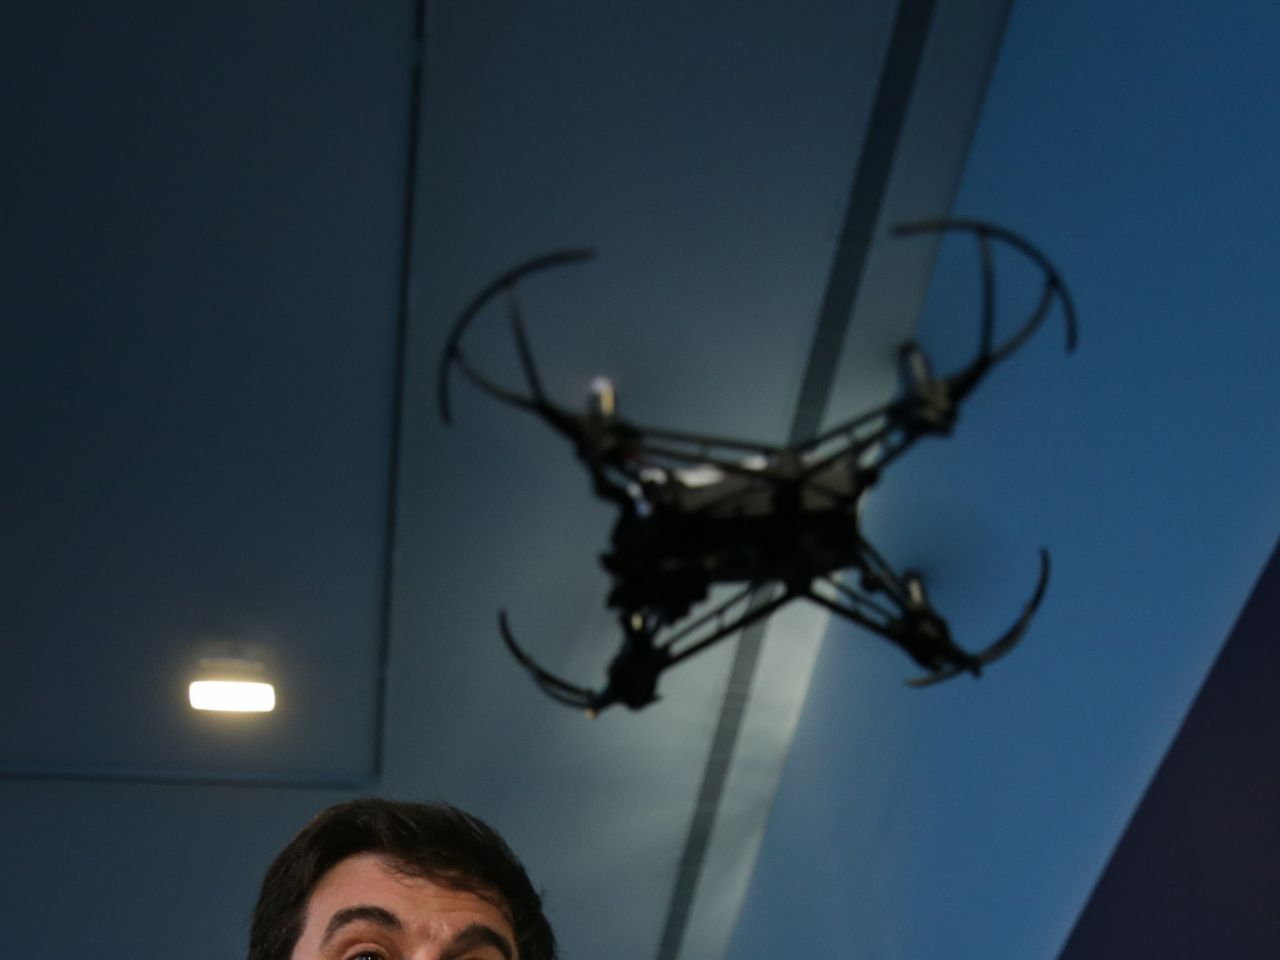 Increase in drone incidents at airports